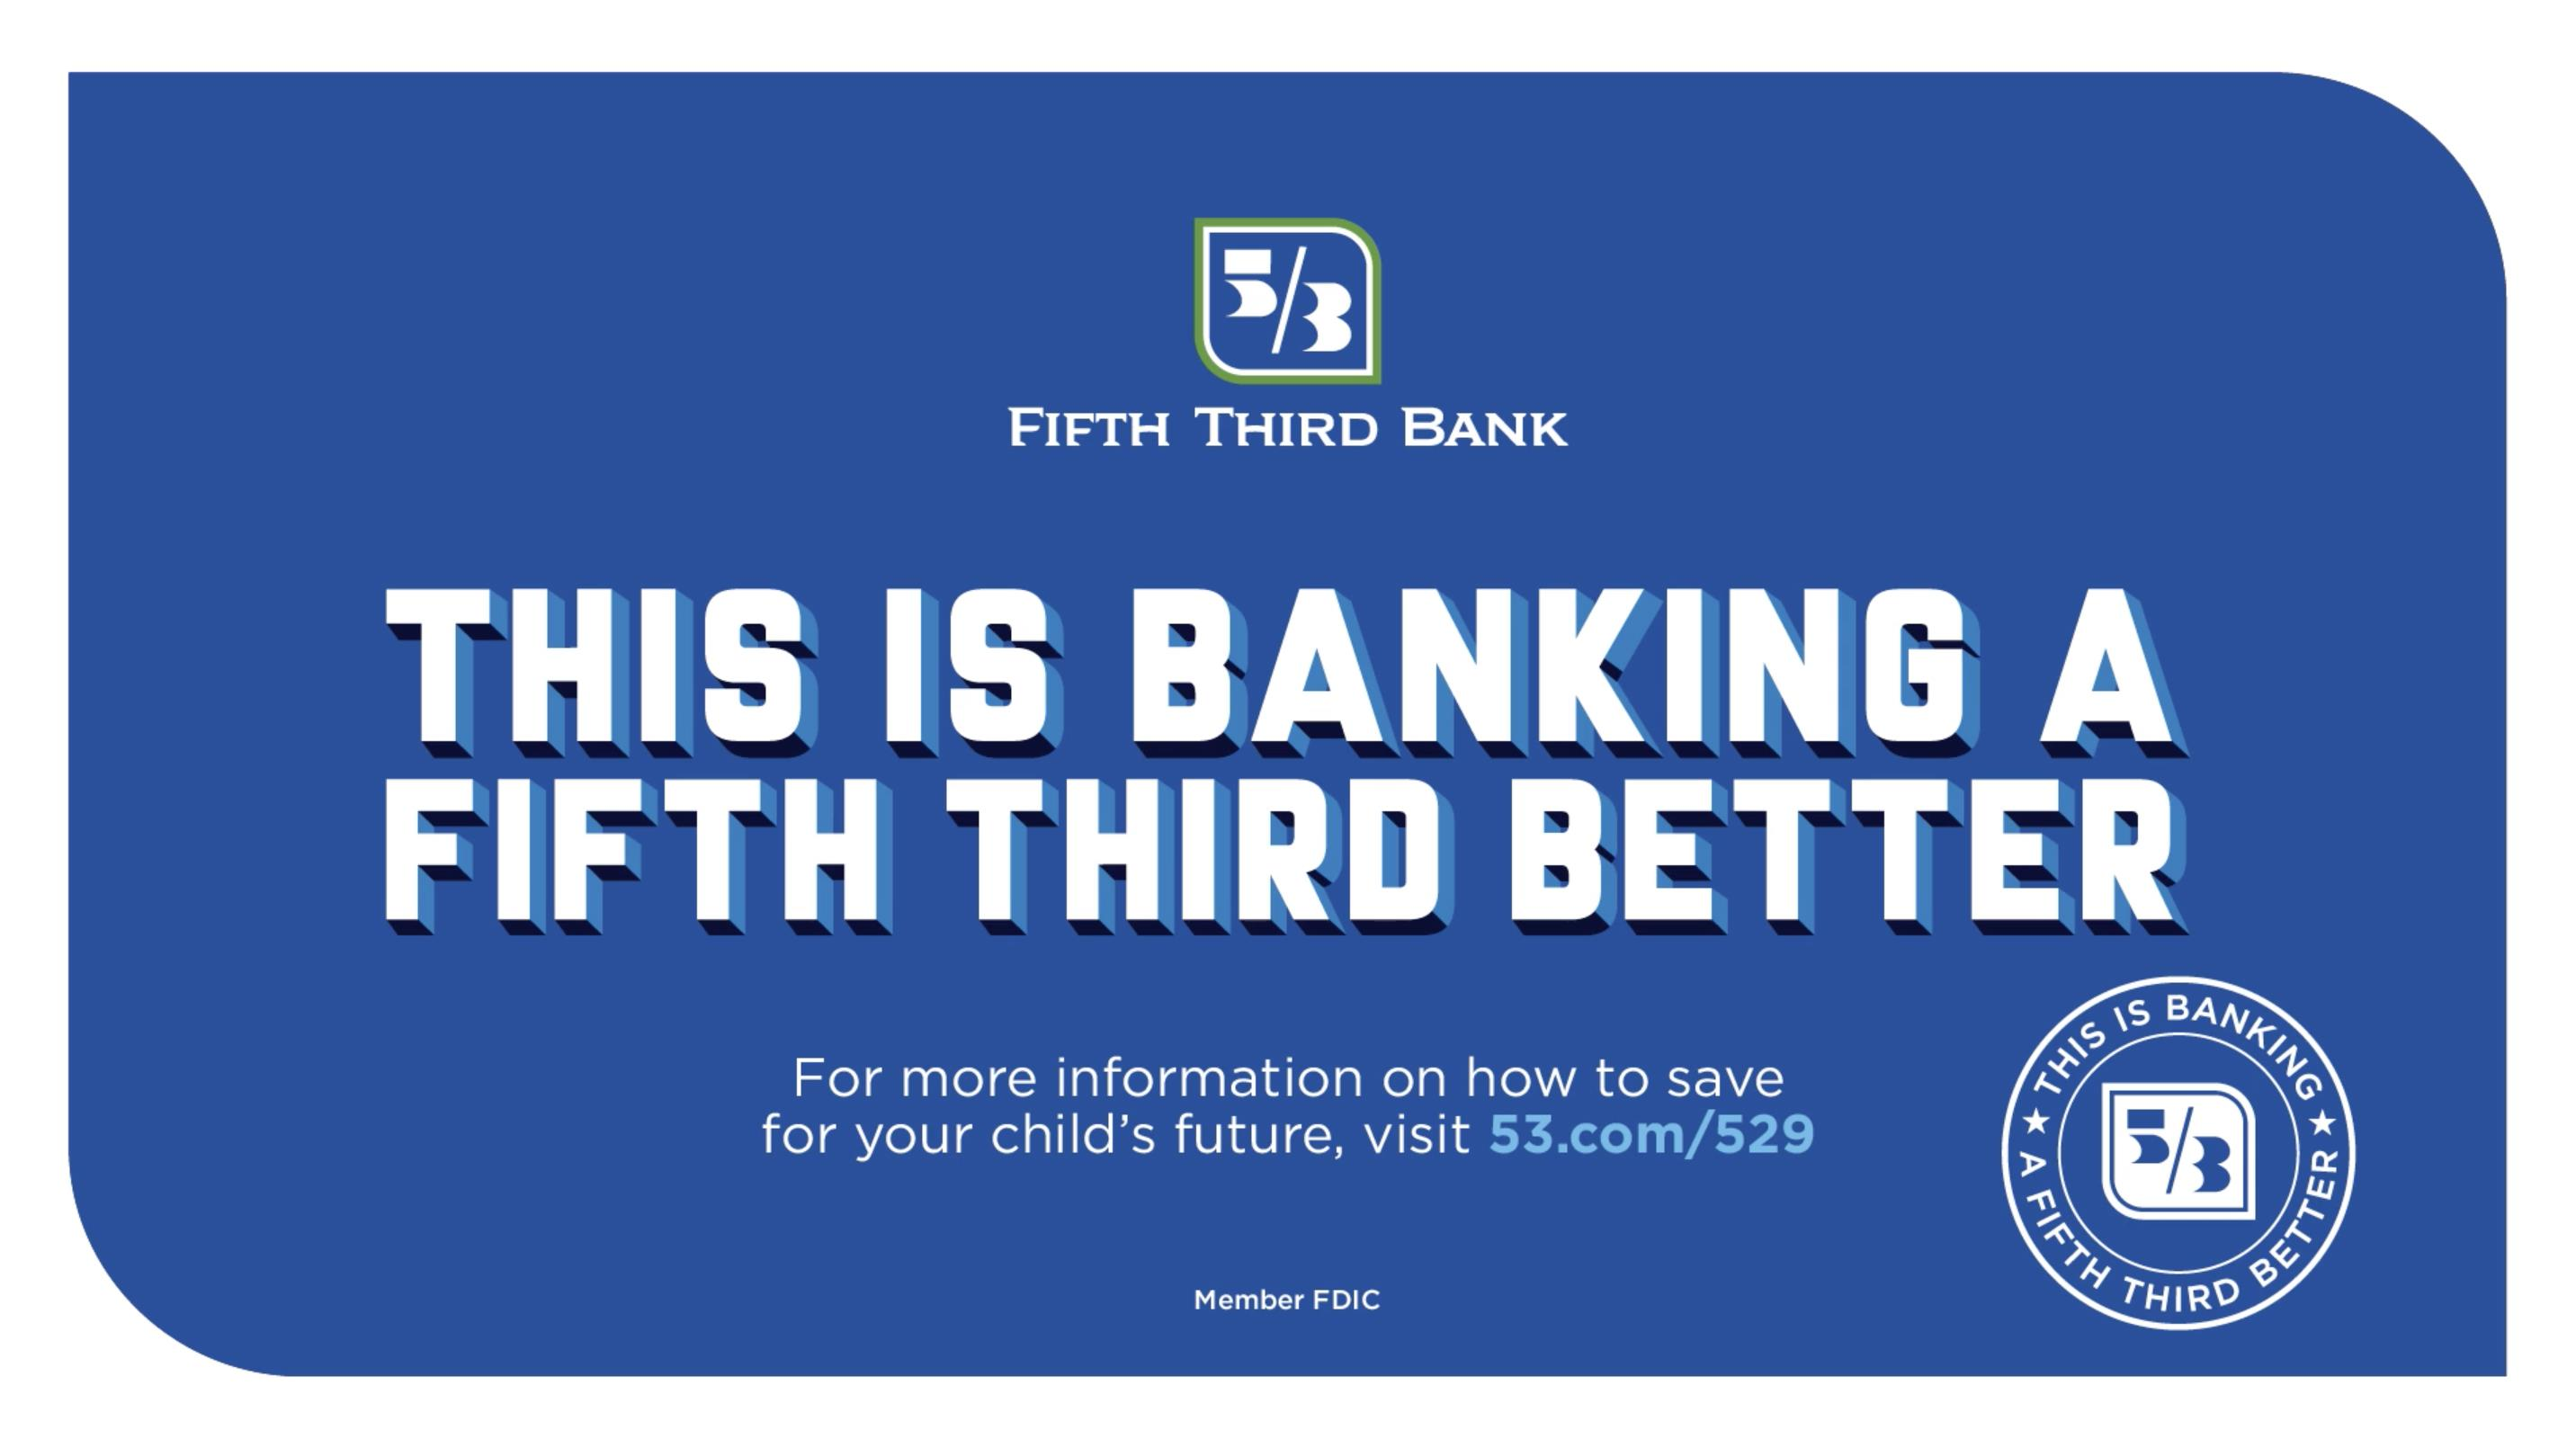 Fifth Third Bank | 5/3 Day Activation